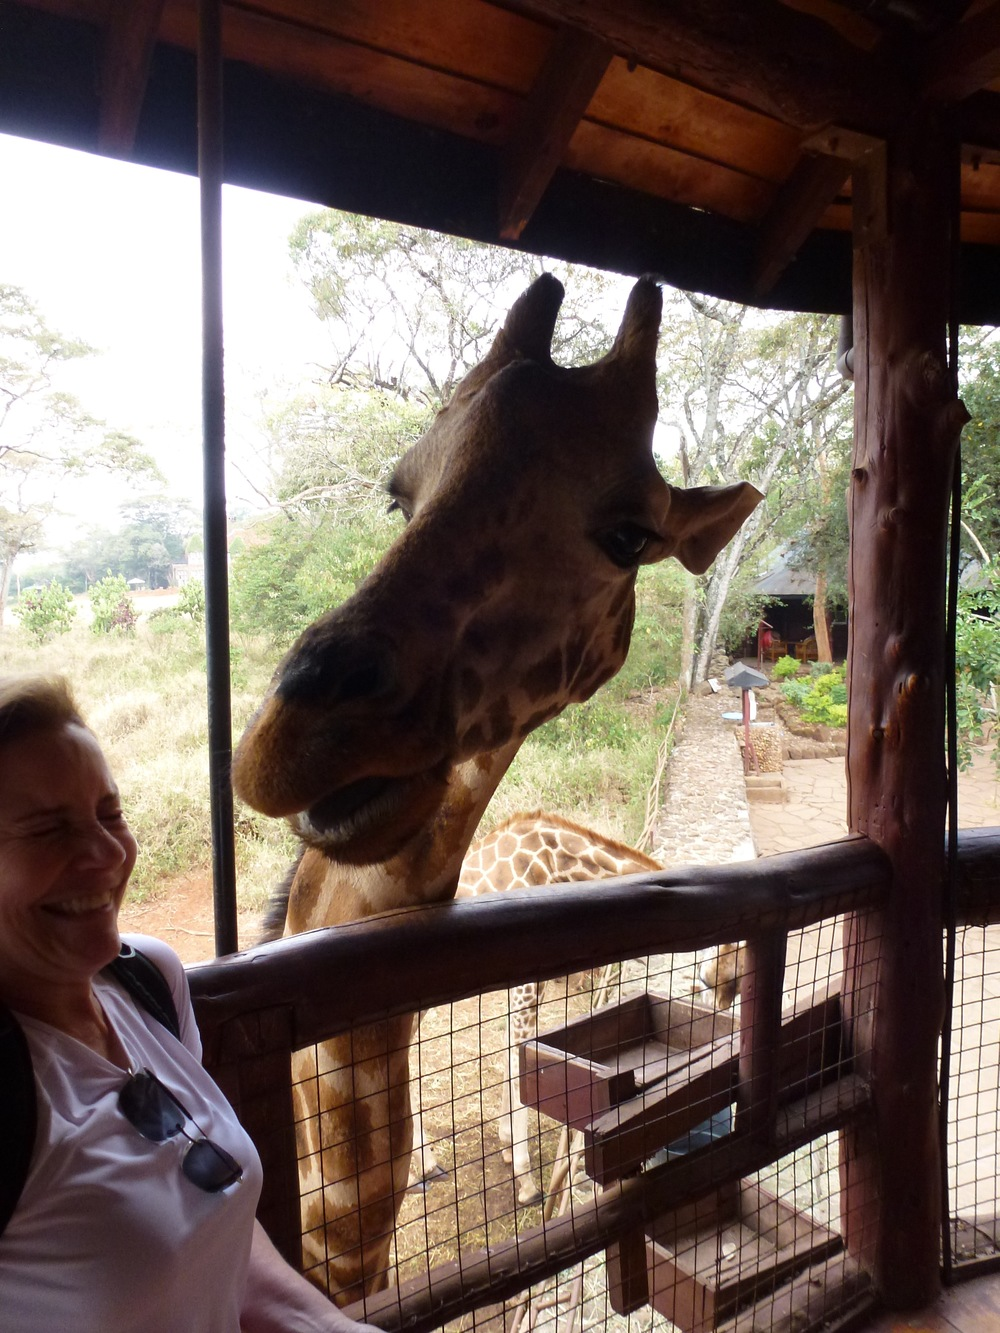 Sharing a few laughs with some giraffes.